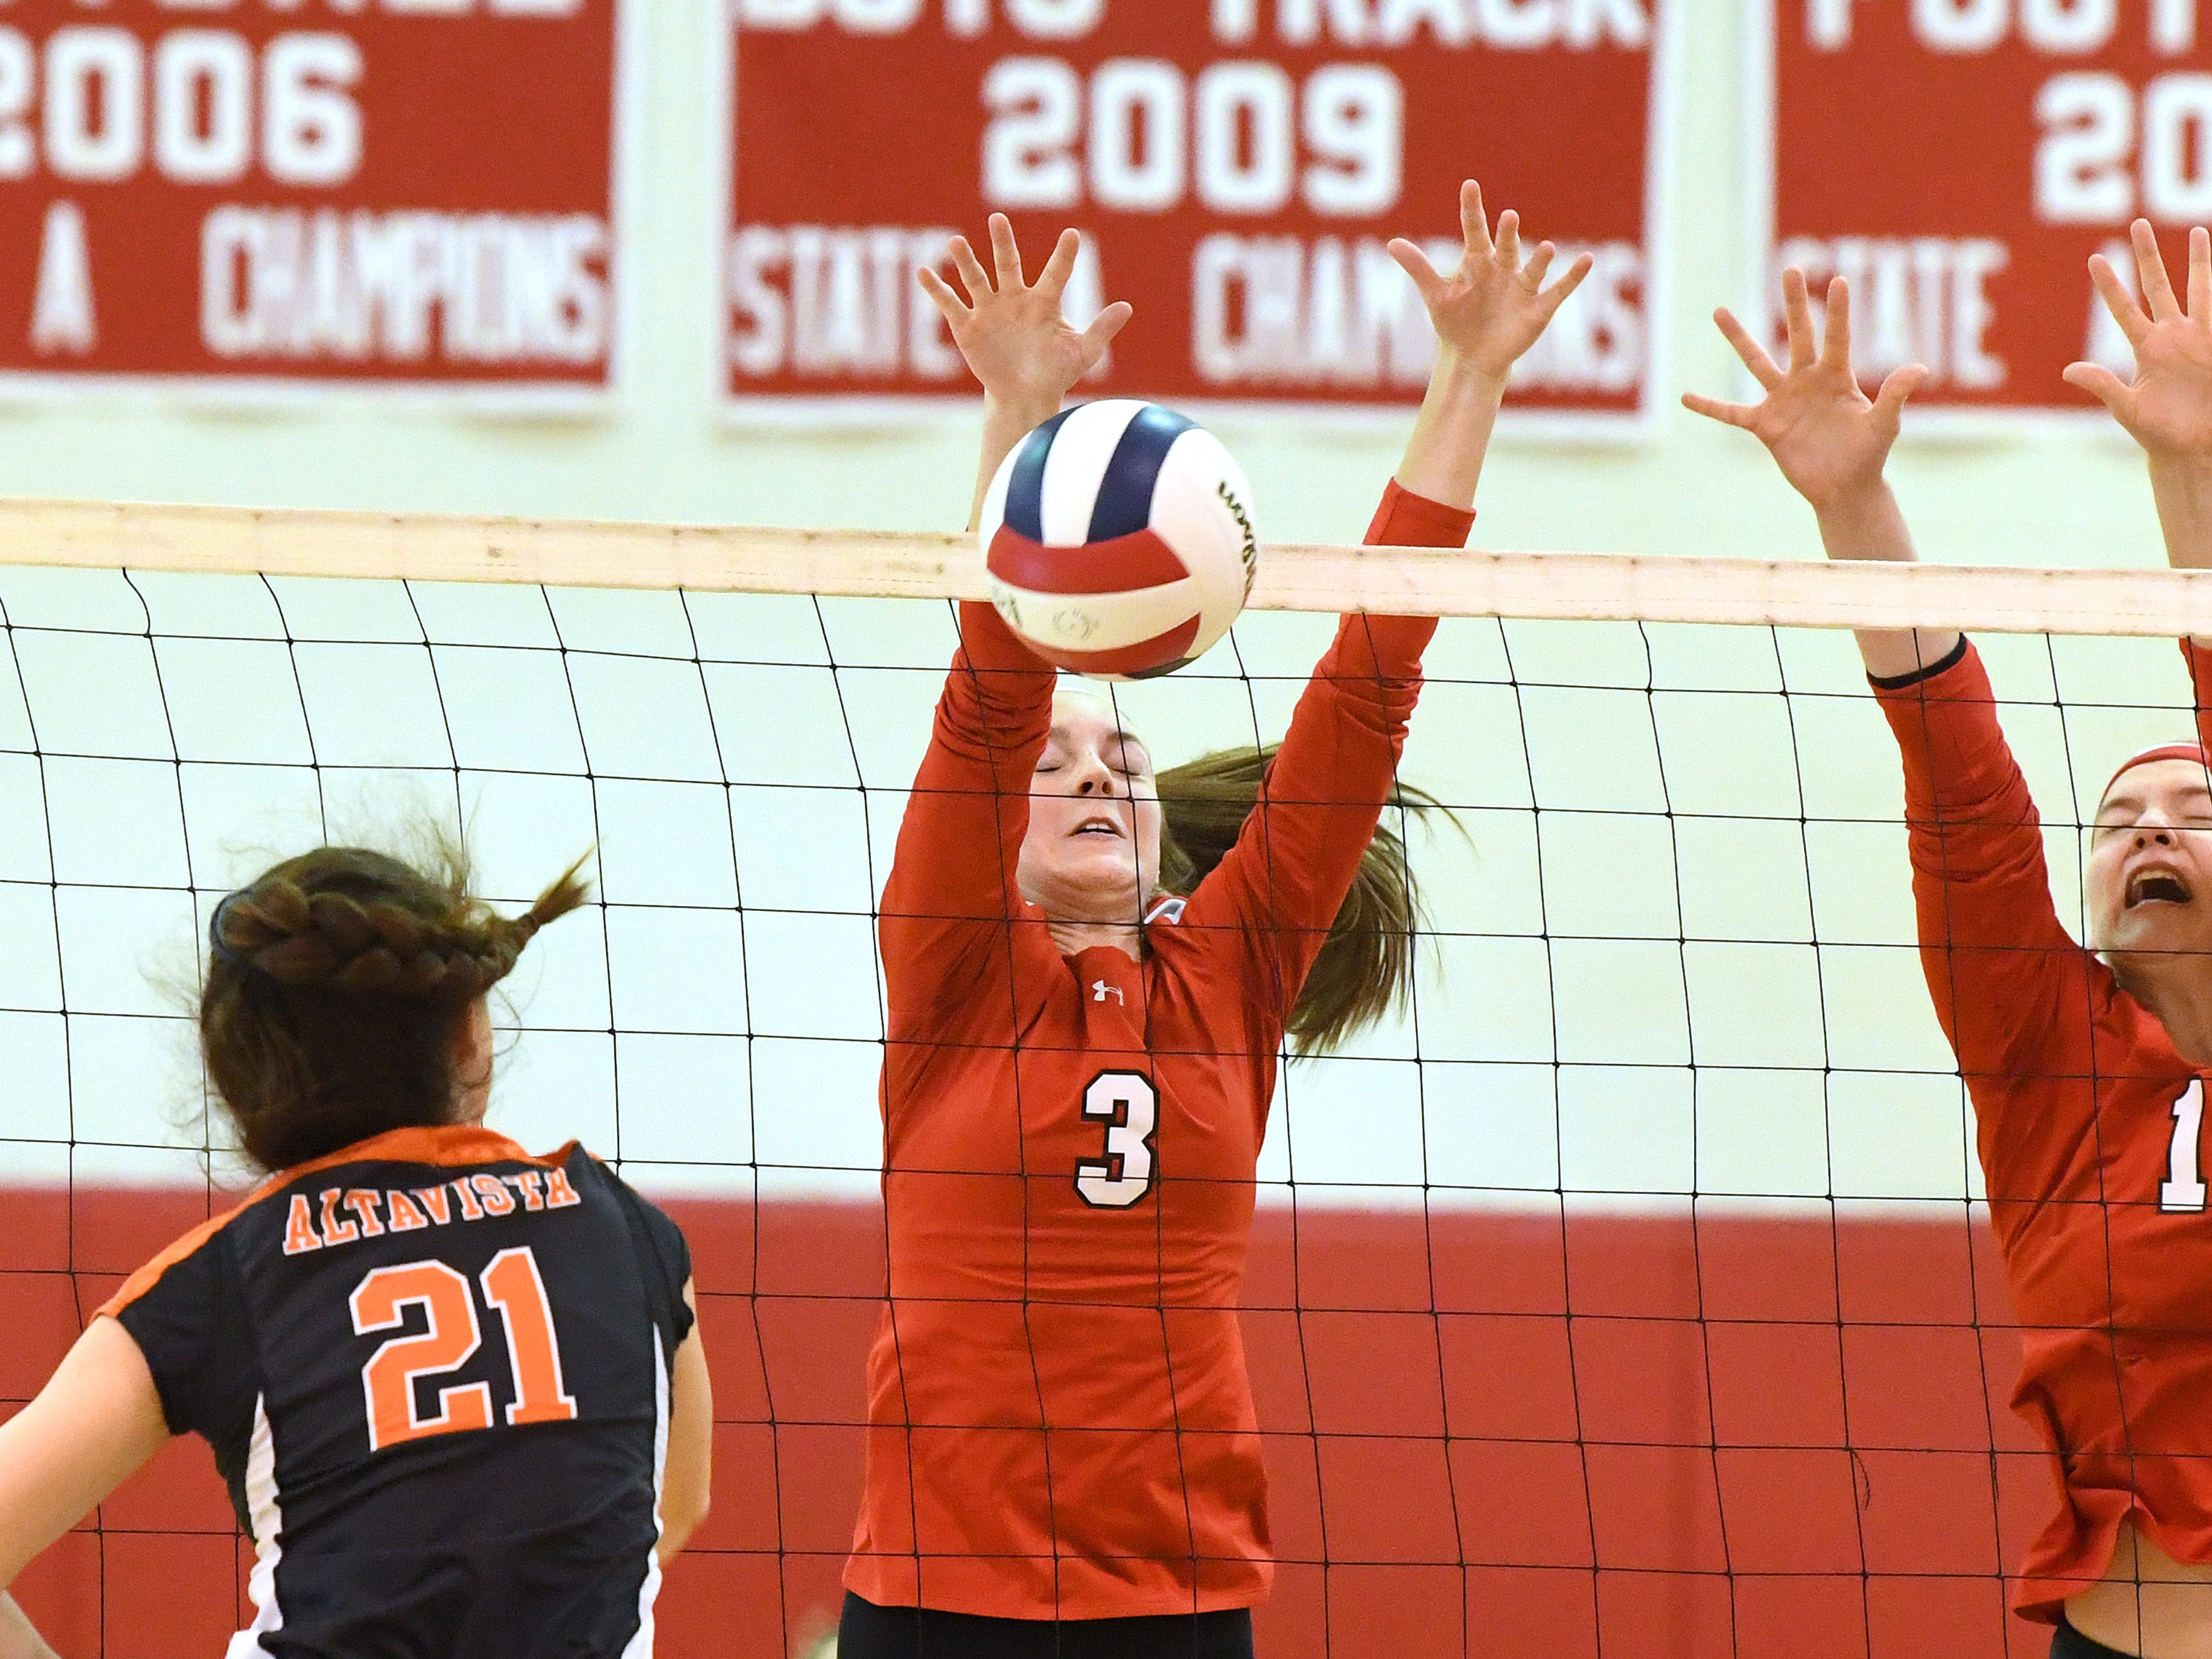 Riverheads' Kendryl Argenbright blocks an Altavista return at the net during the Region 1B volleyball championship played in Greenville on Wednesday, Nov. 7, 2018.